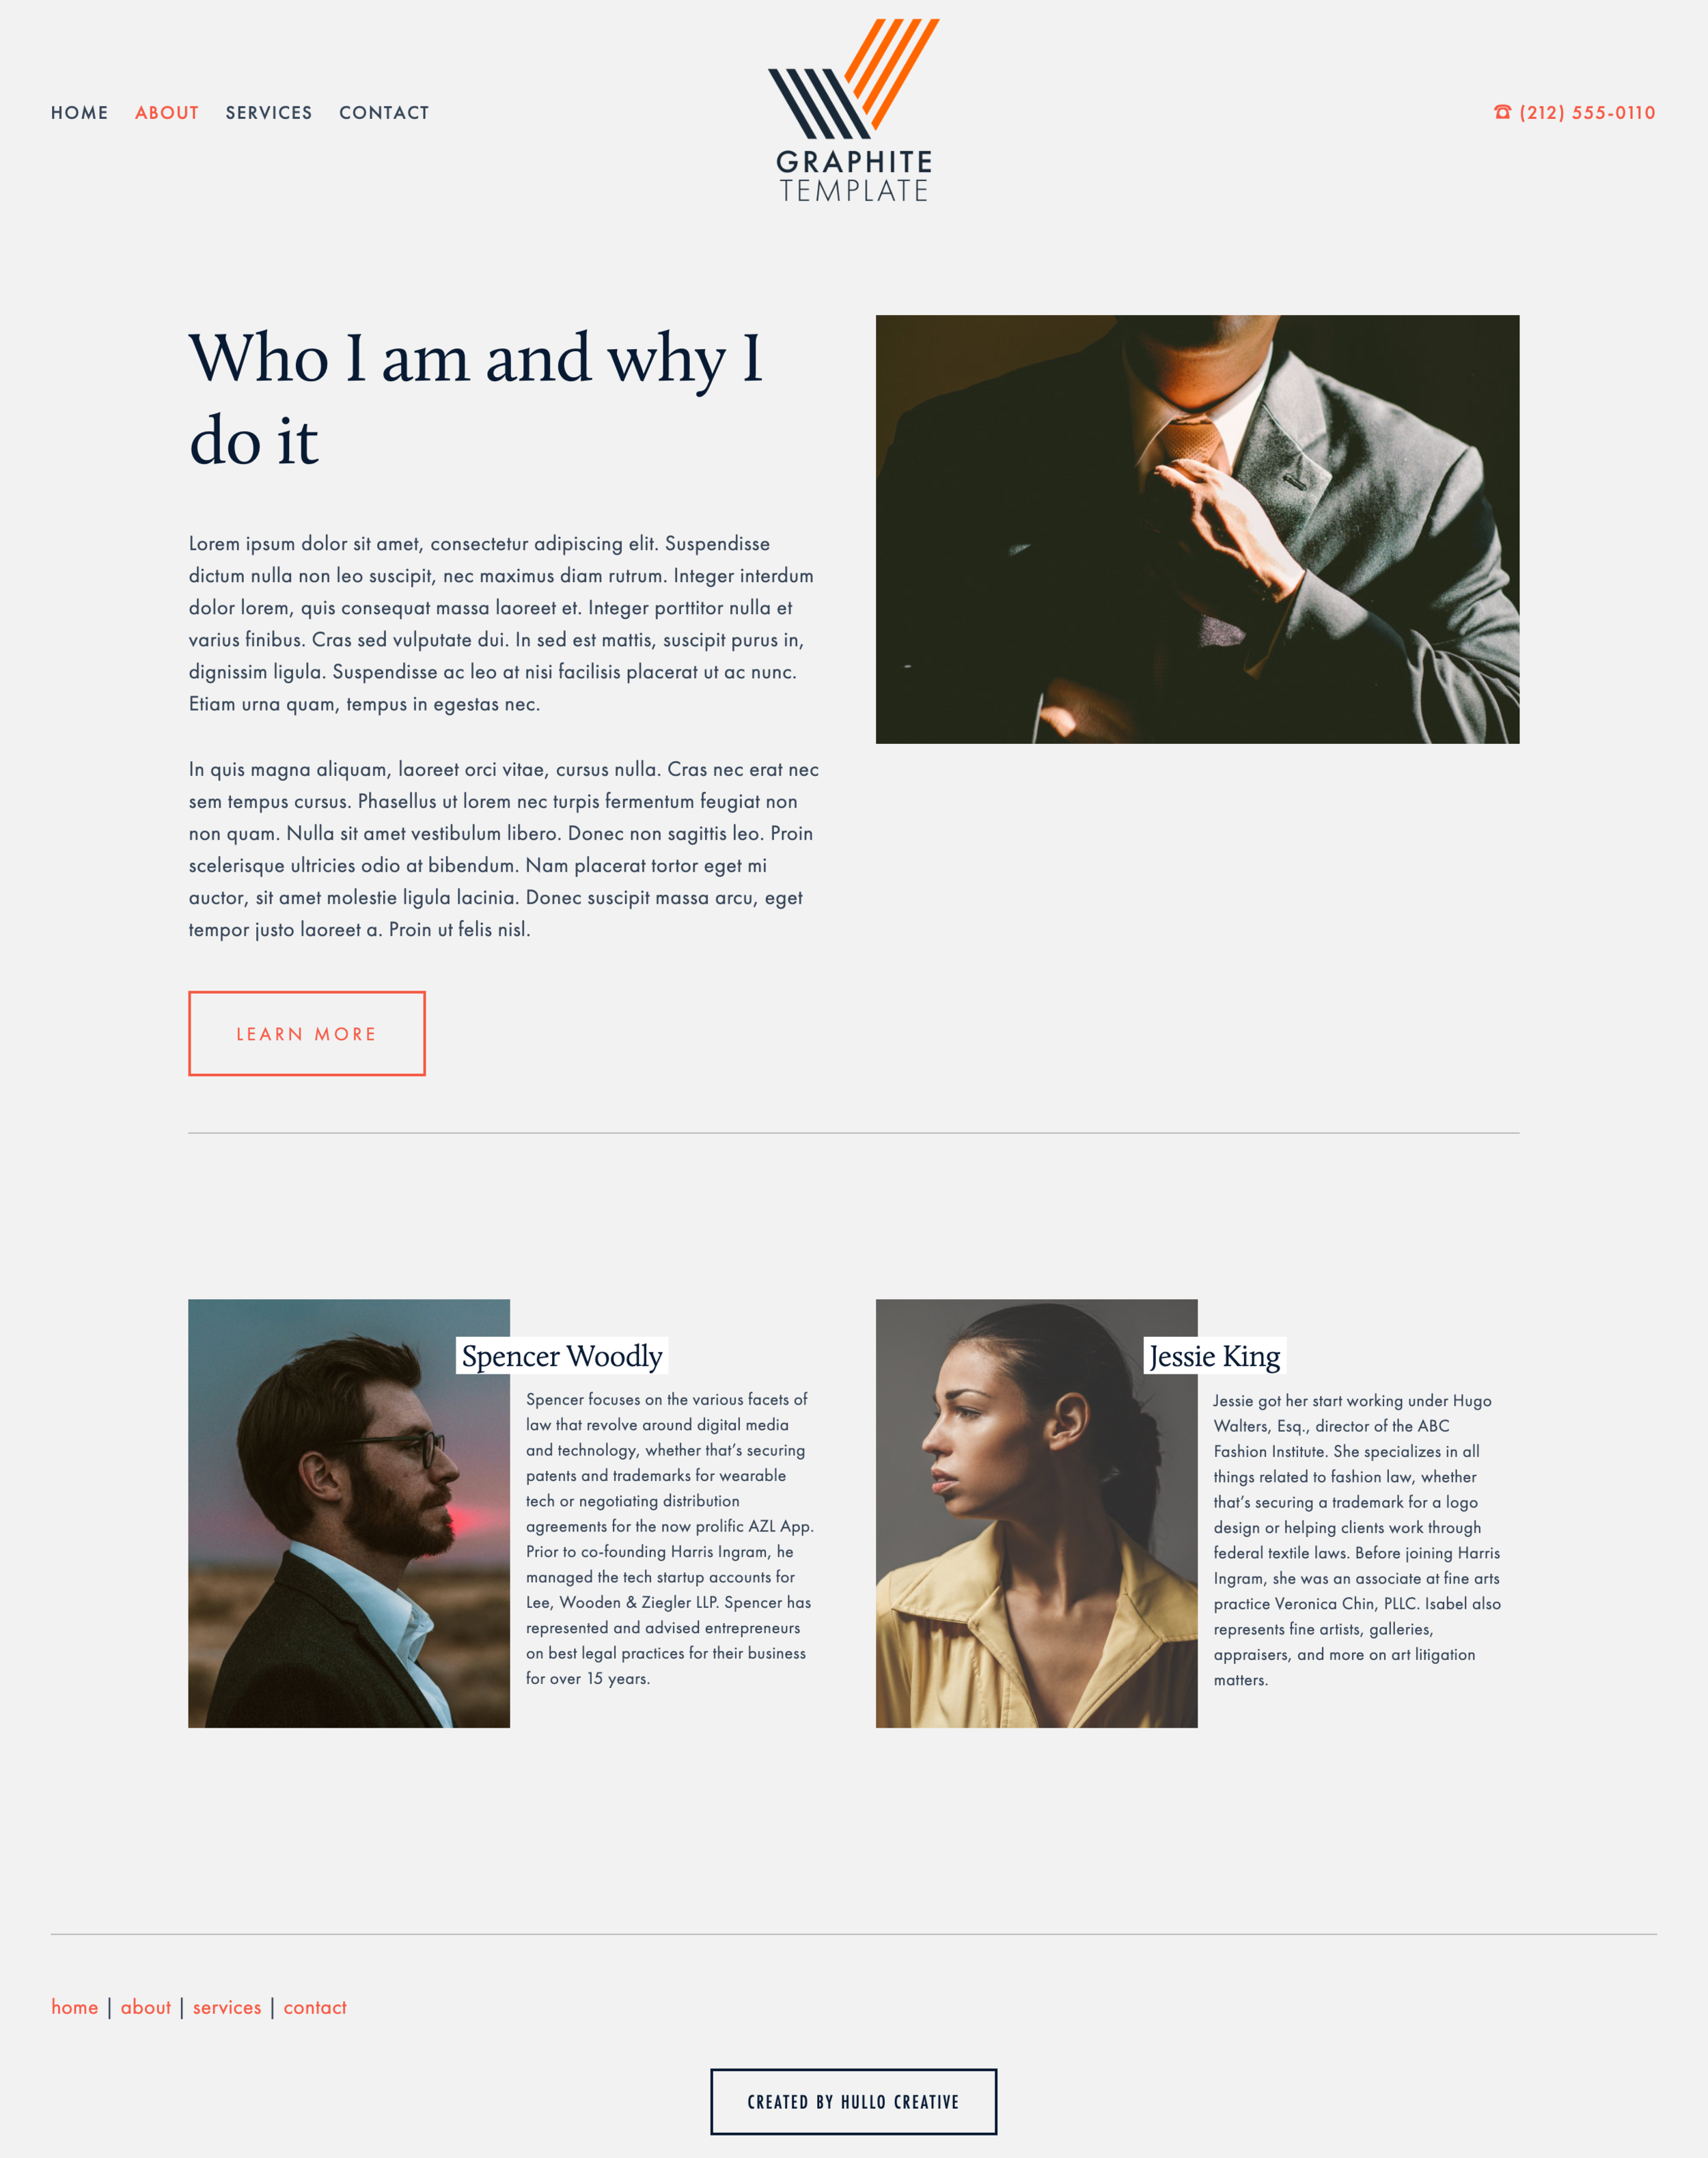 screencapture-graphite-template-squarespace-about-1-2019-10-04-11_25_38.png